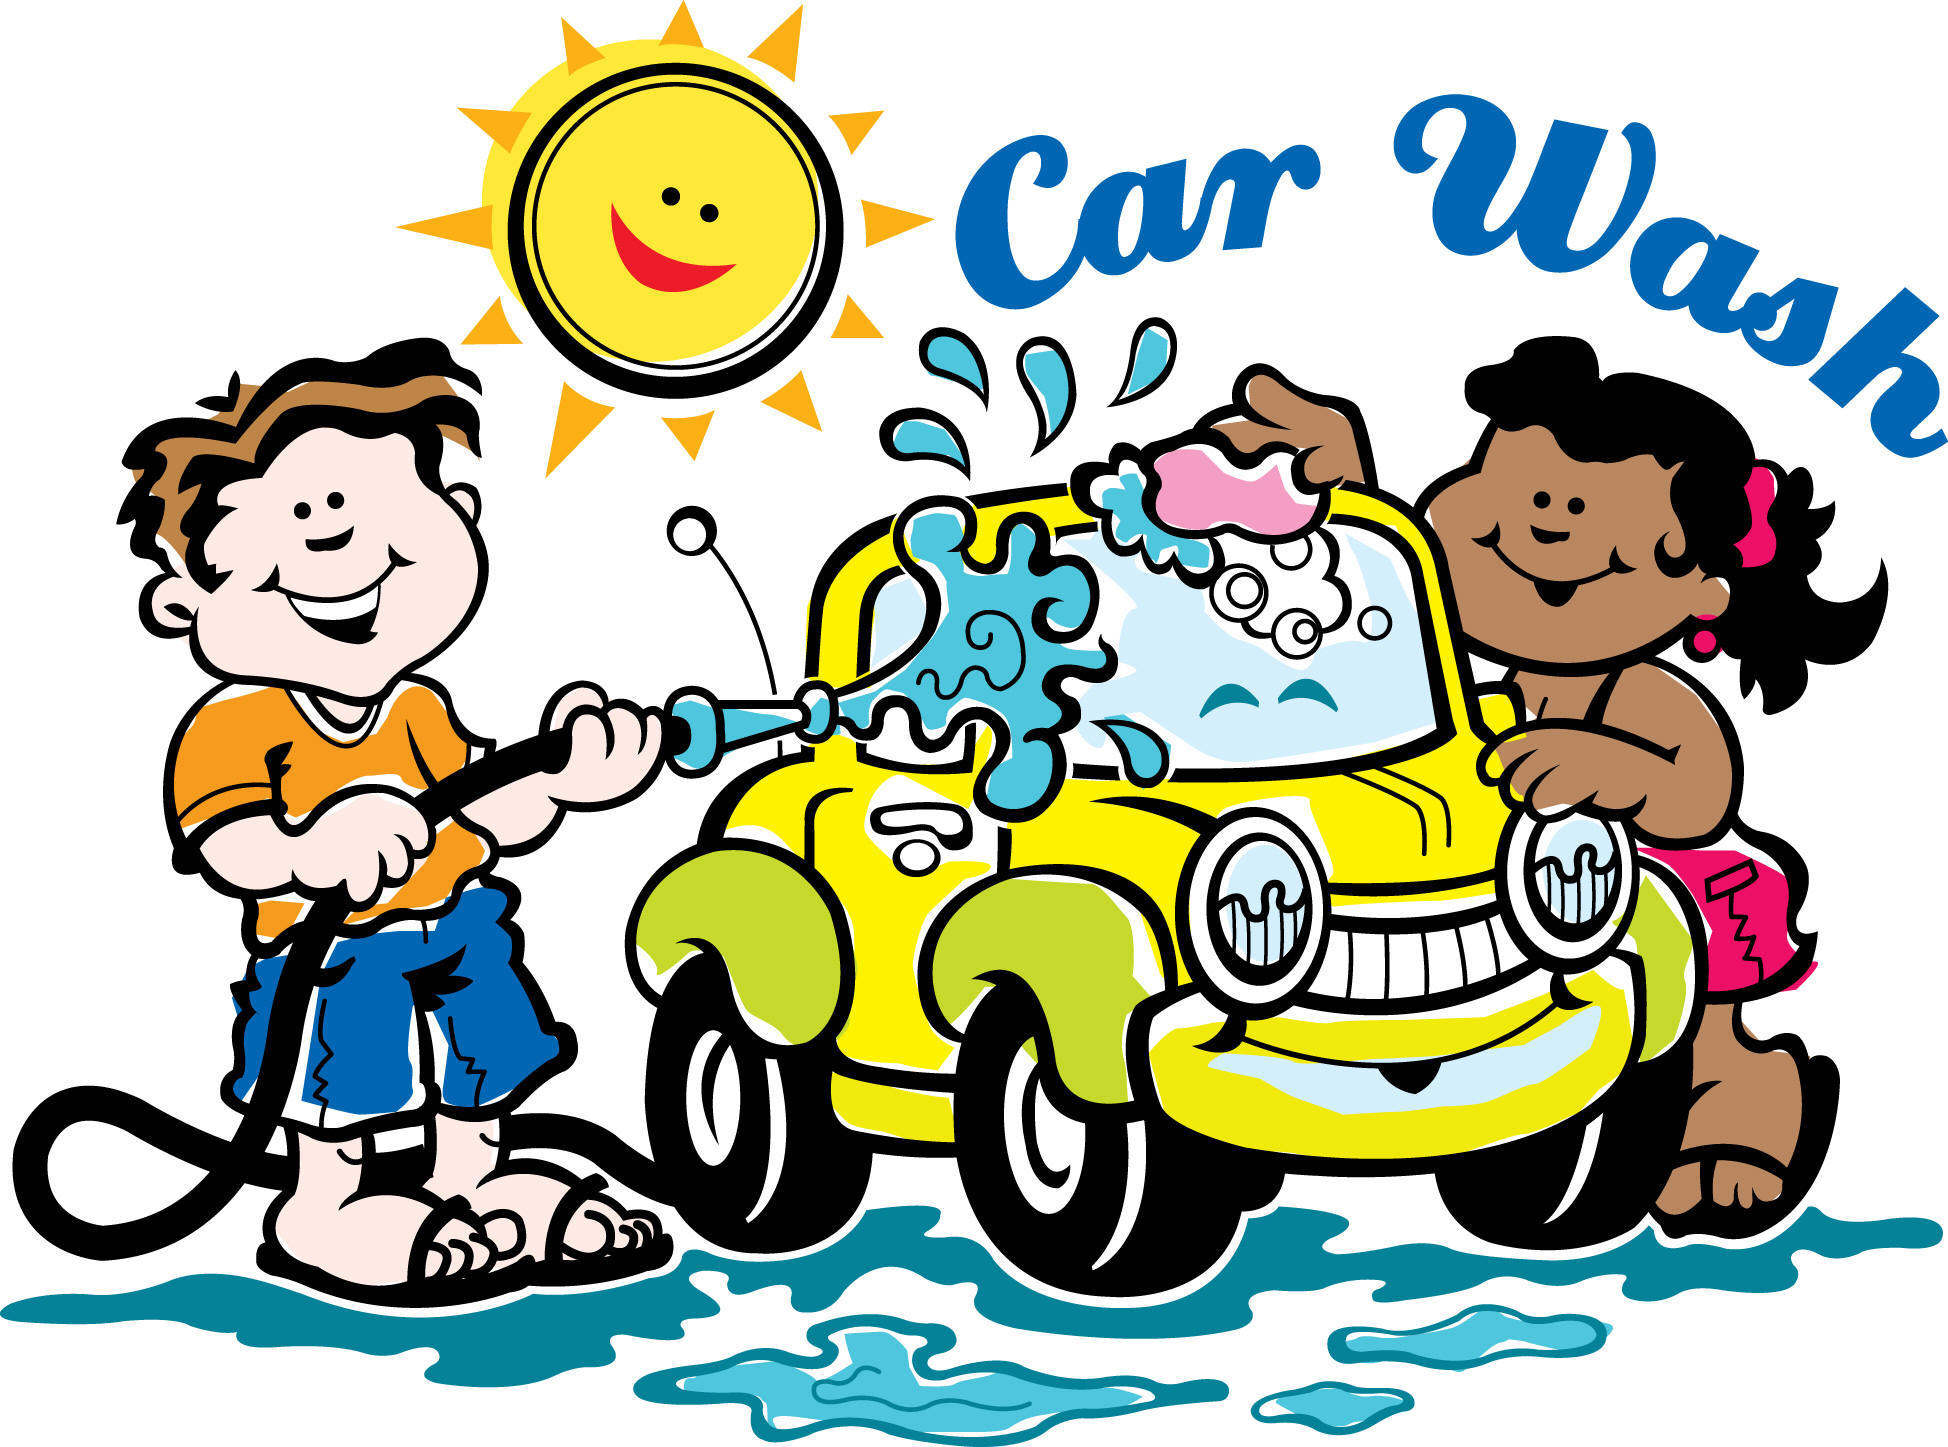 Car in car wash clipart vector freeuse library Cars Car Wash Clipart - Clipart Kid vector freeuse library